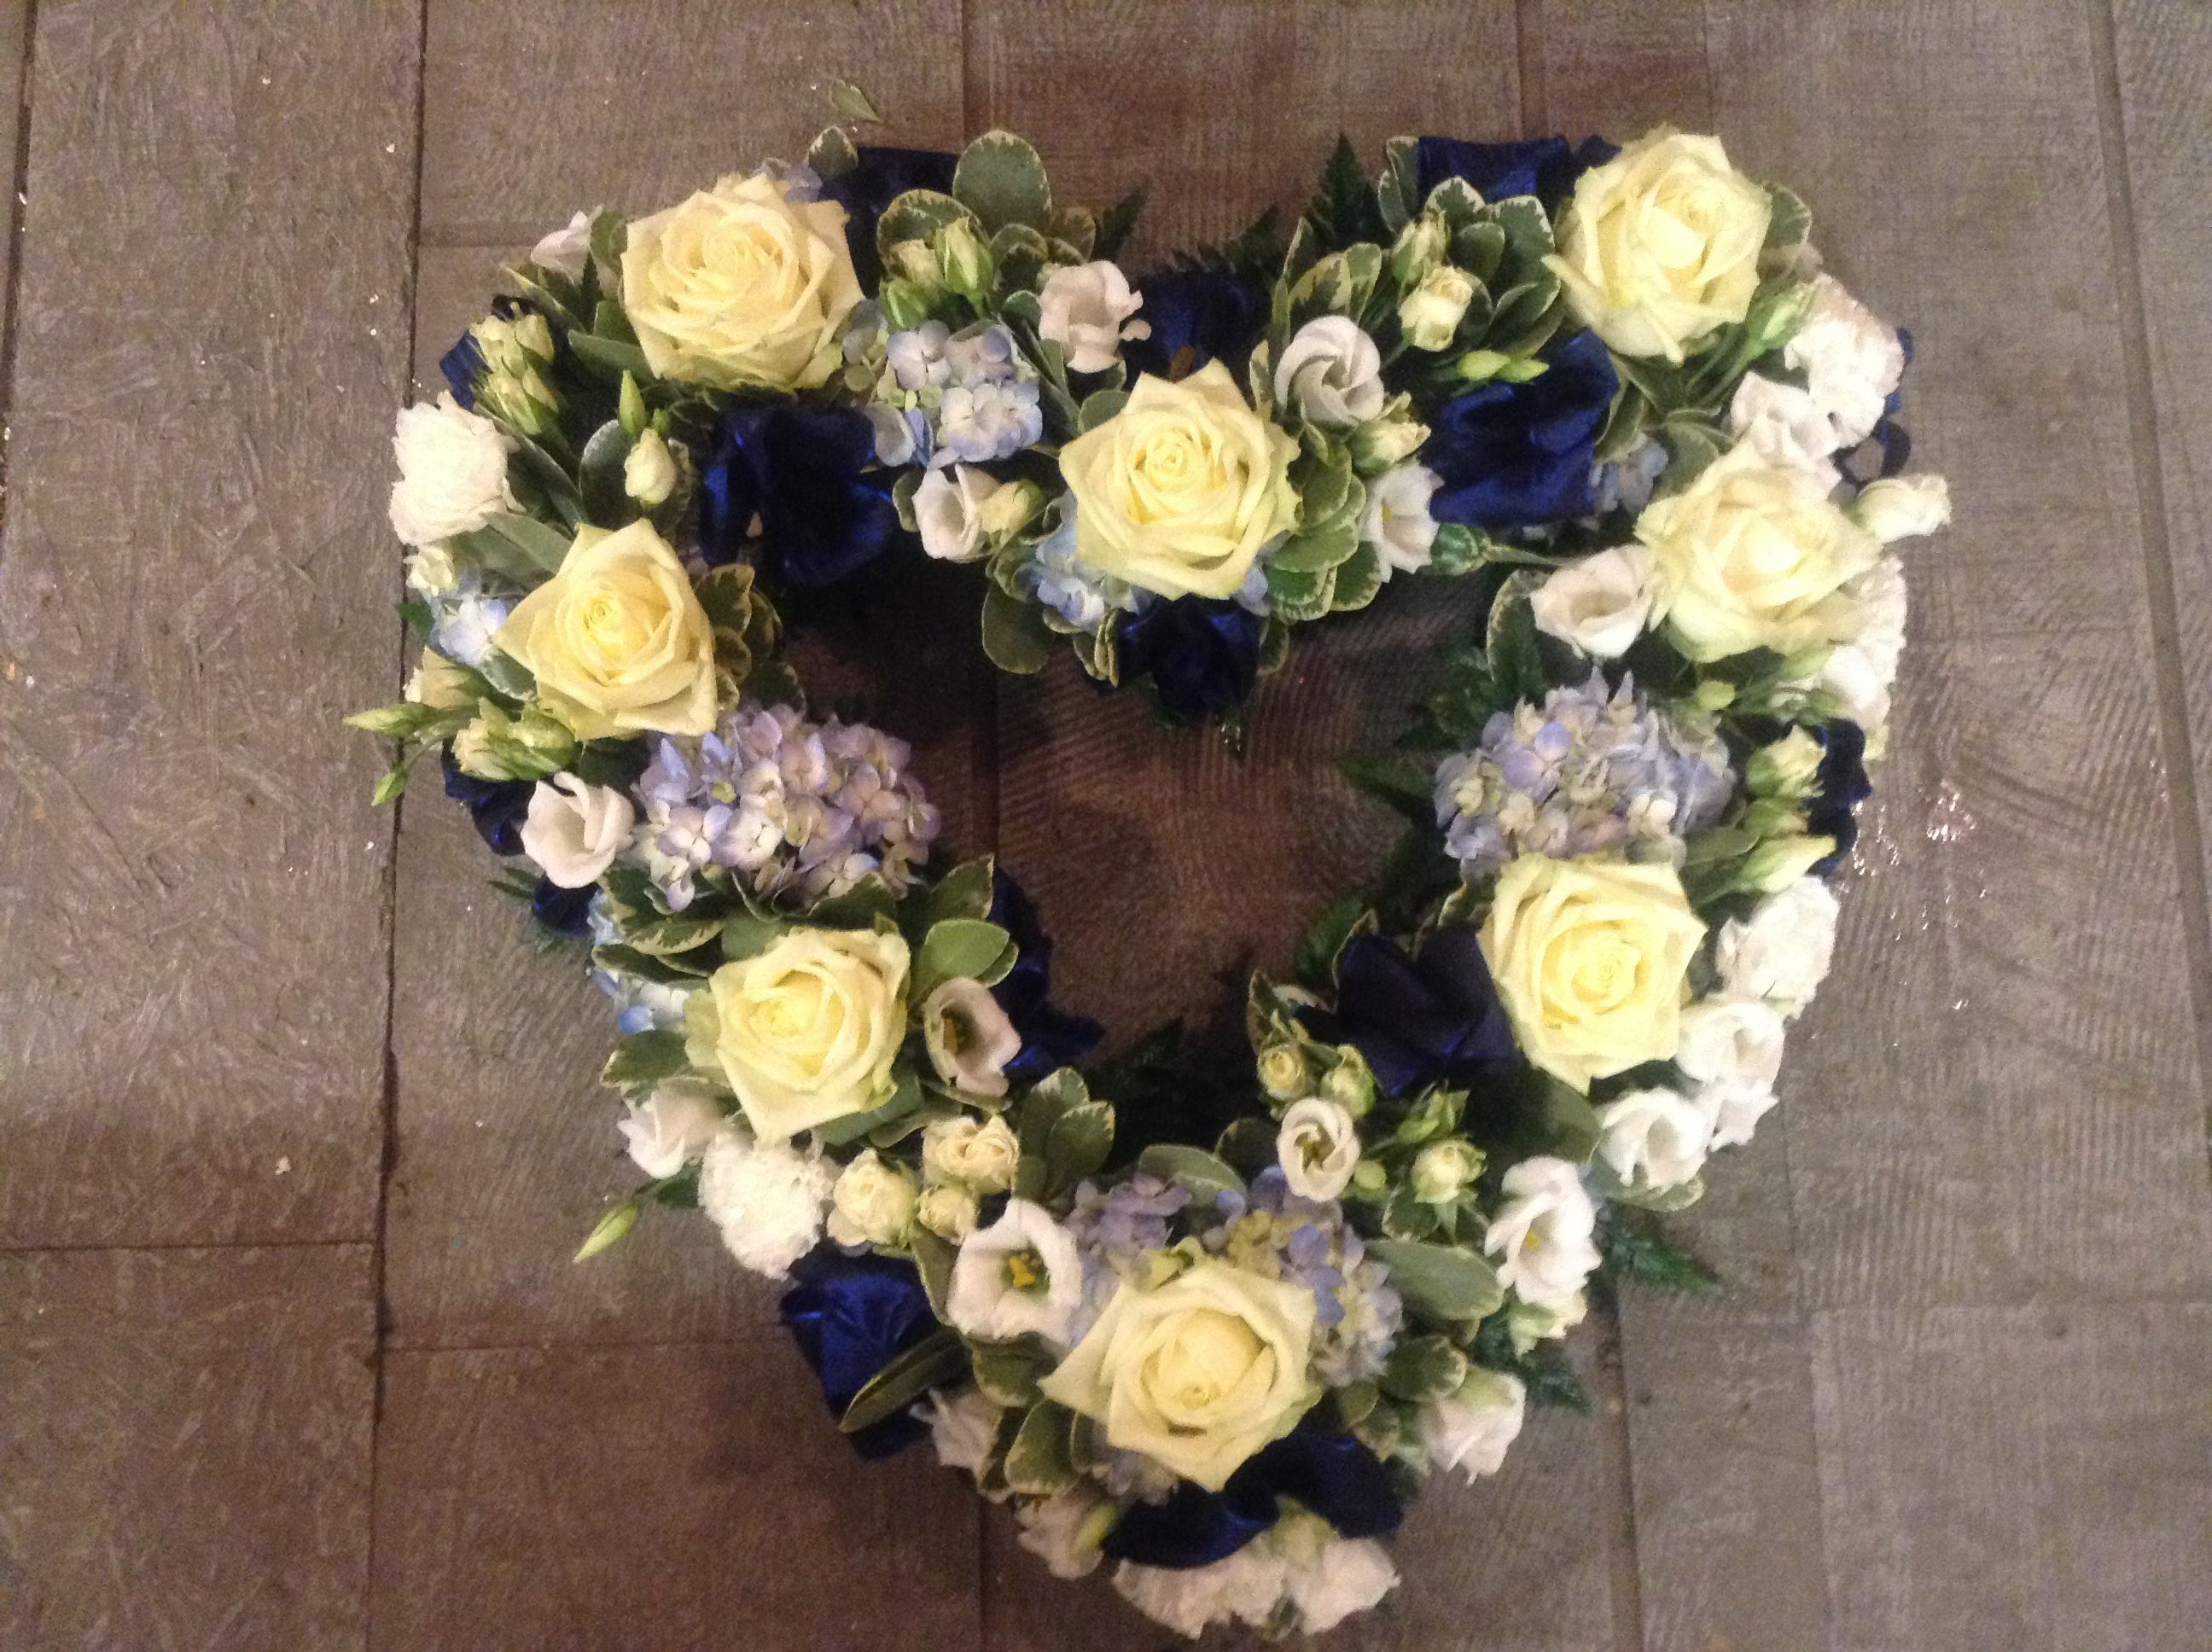 16 best hydrangea funeral images on pinterest funeral flowers heart of flowers pale blue hydrangea cream roses navy silk ribbon izmirmasajfo